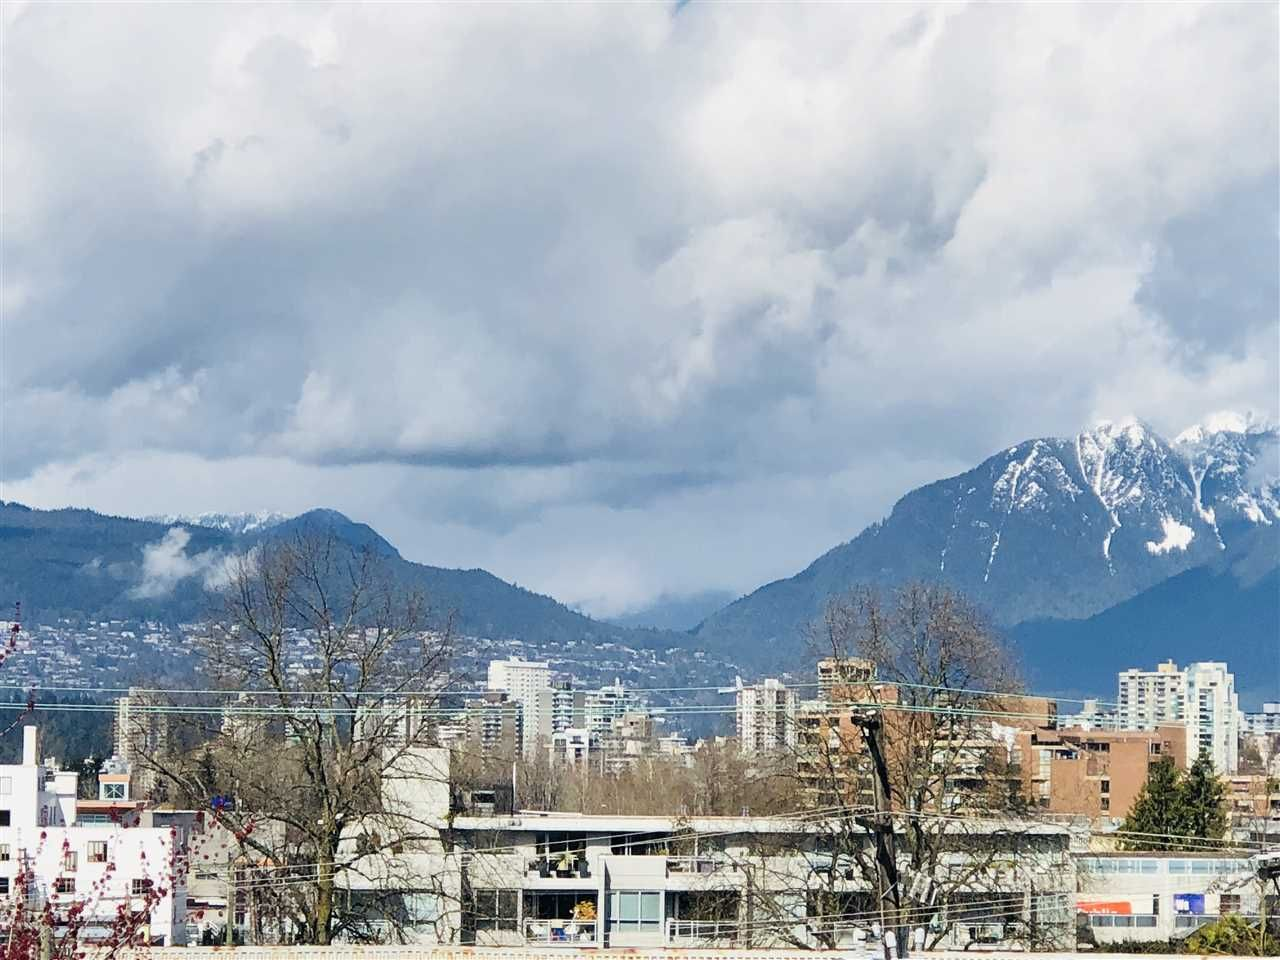 """Main Photo: 401 2288 PINE Street in Vancouver: Fairview VW Condo for sale in """"The Fairview"""" (Vancouver West)  : MLS®# R2251724"""